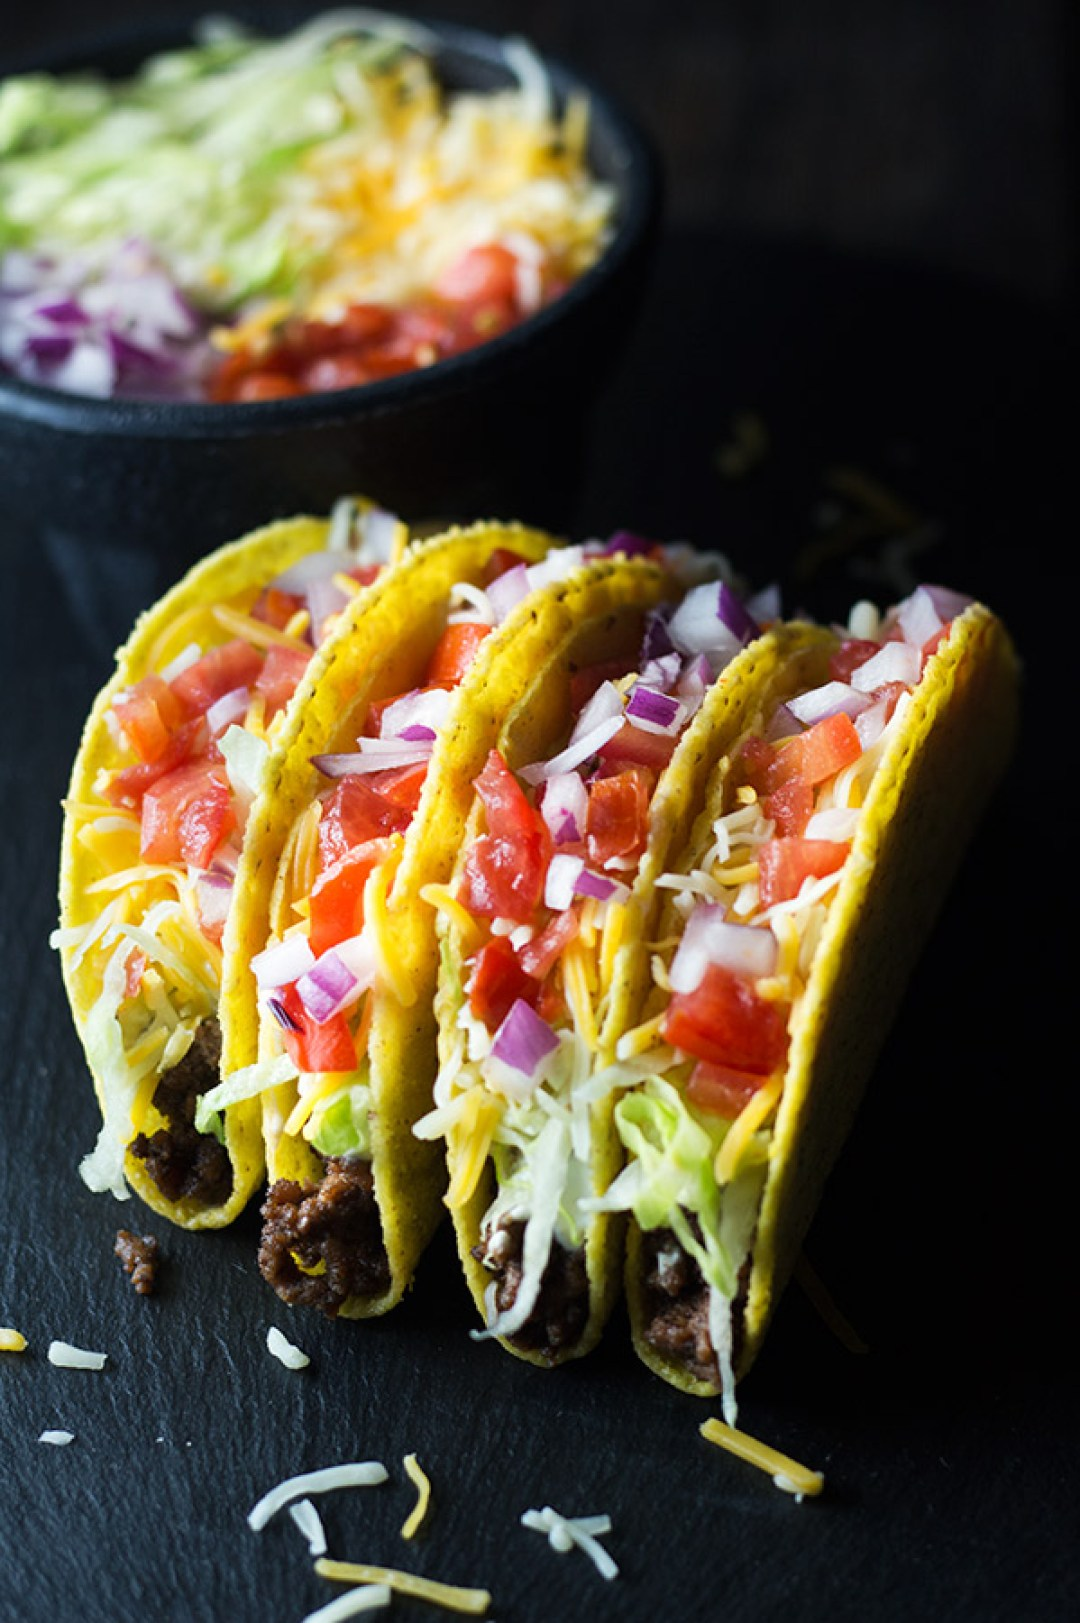 Crunchy Beef Tacos - Easy to make and fun to eat crunchy beef tacos, packed with delicious flavors. It's a great go-to weeknight meal, especially on Taco Tuesday nights. | butterandthings.com